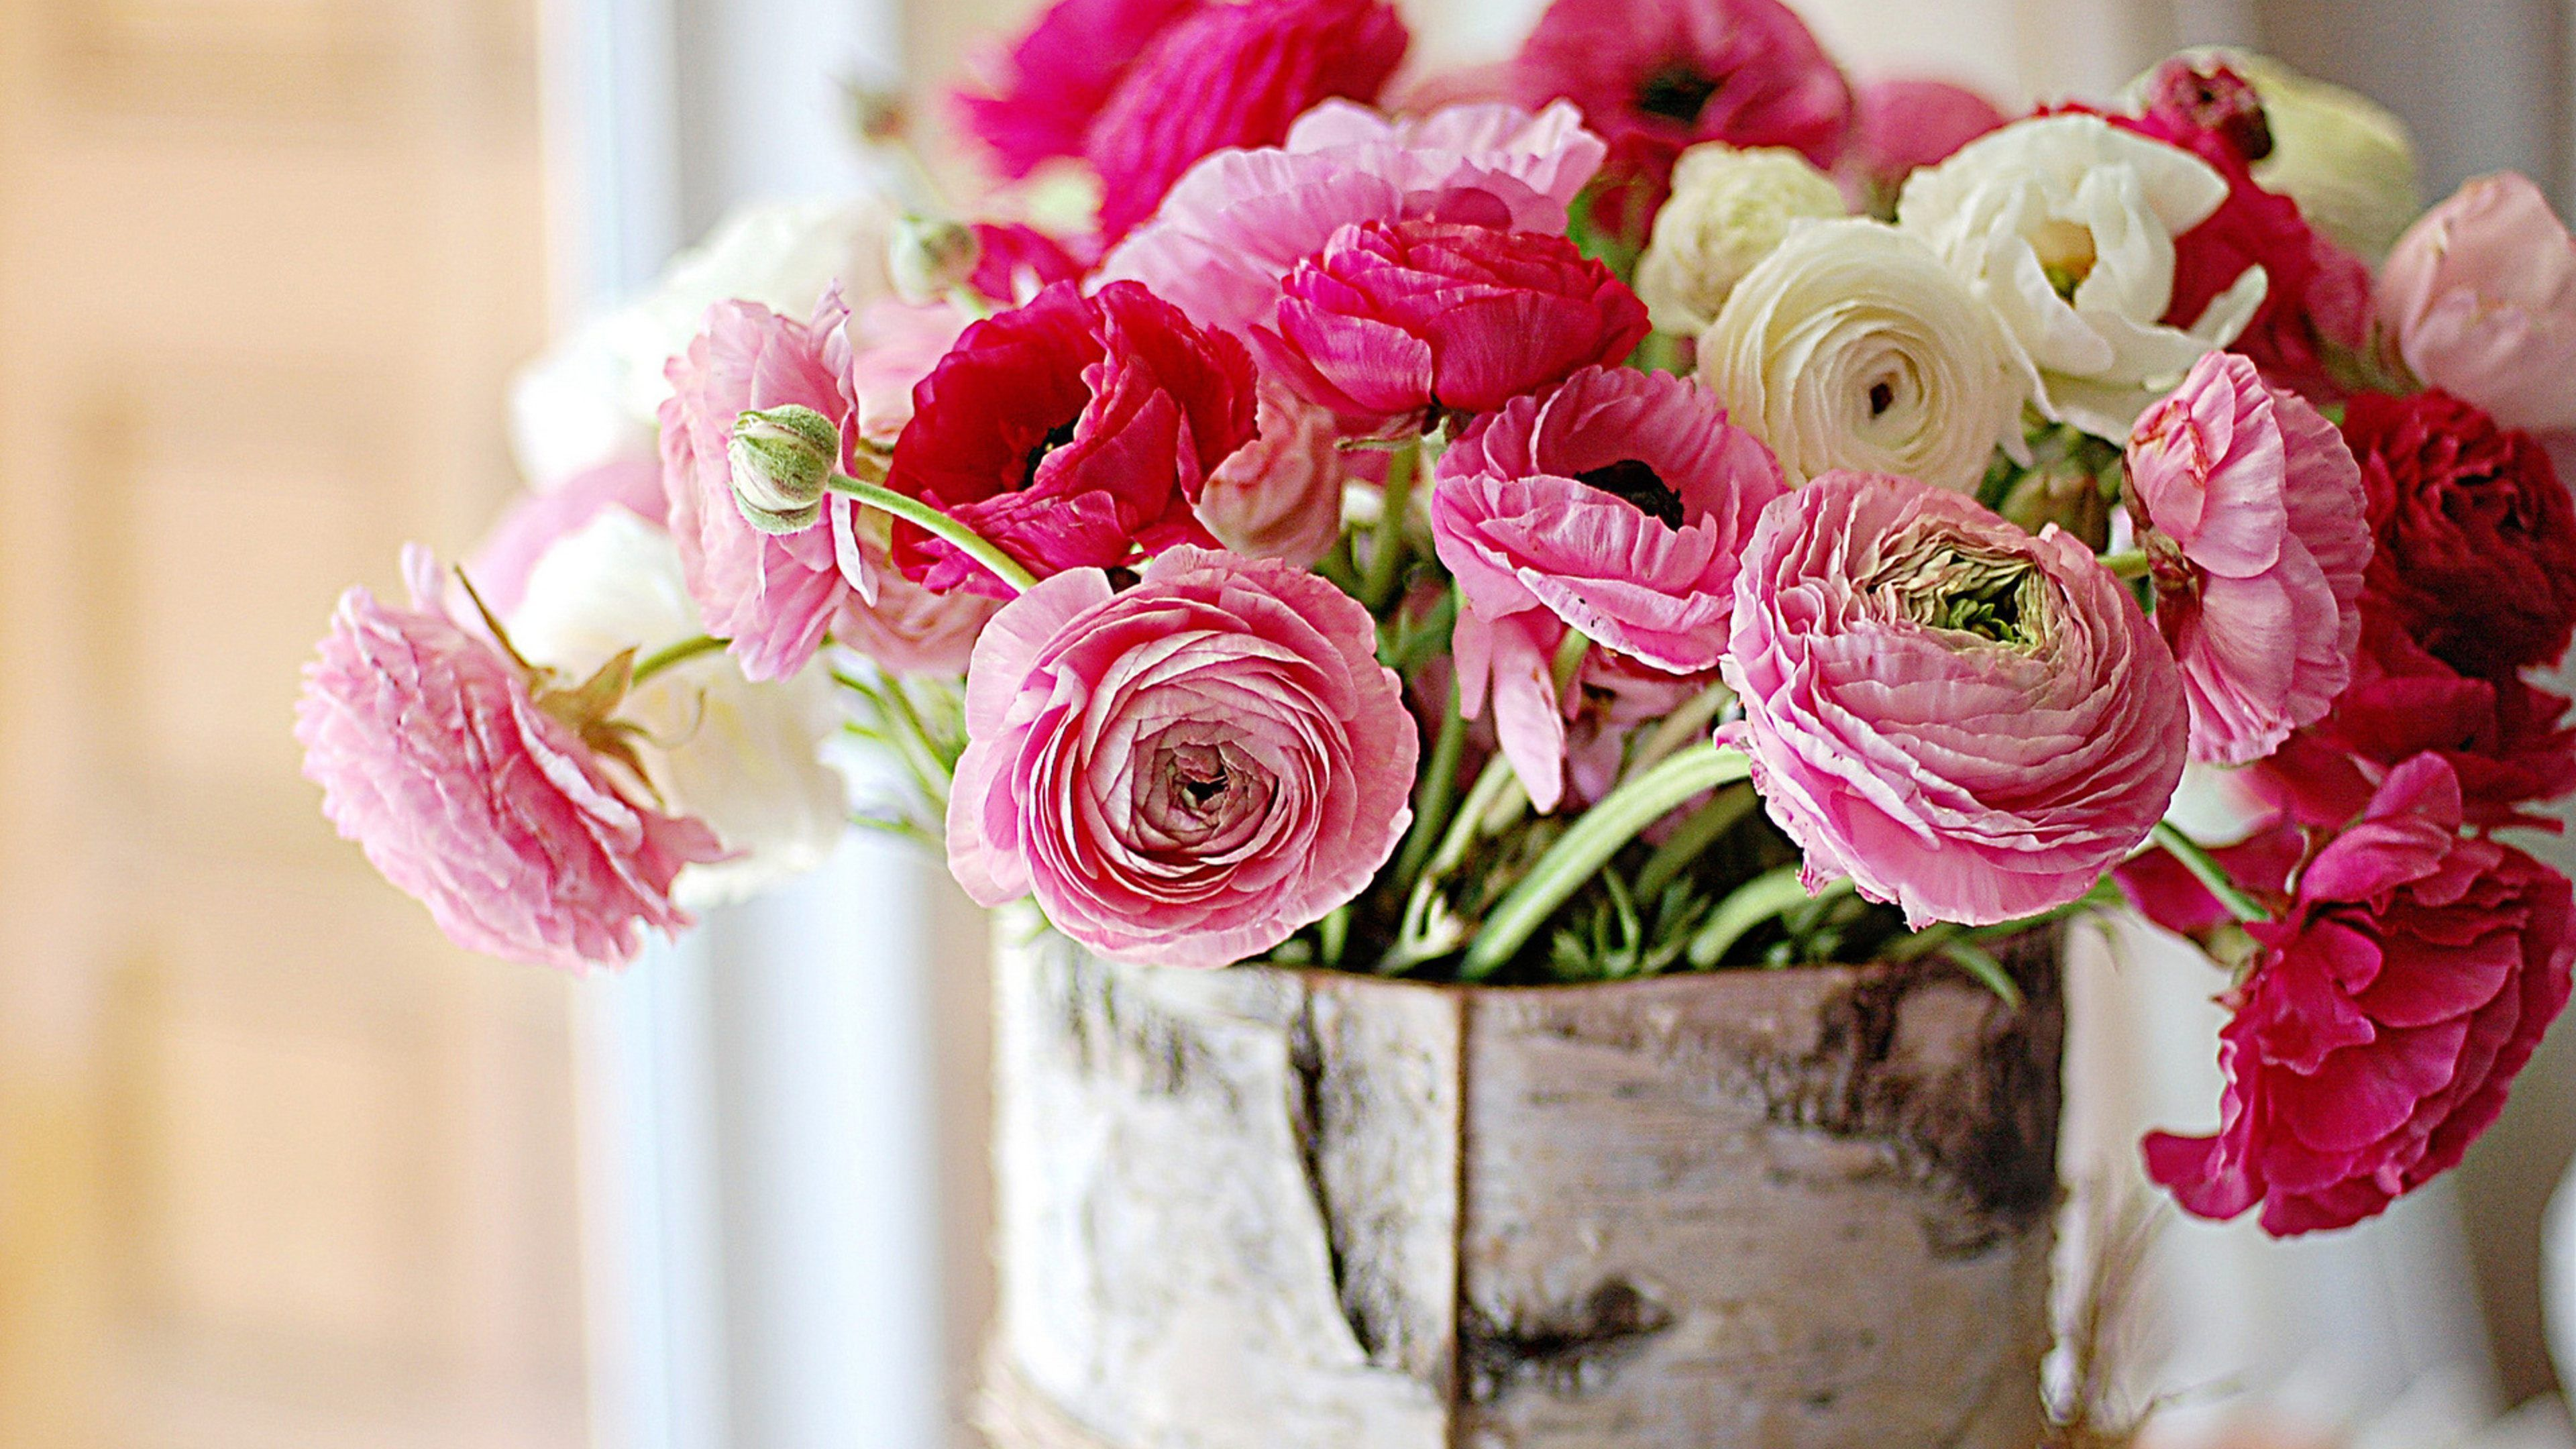 Image result for peony wallpaper wallpaper pinterest gardens still life bouquets nature flowers color pink vase bowl macro soft bokeh window wallpaper background izmirmasajfo Images